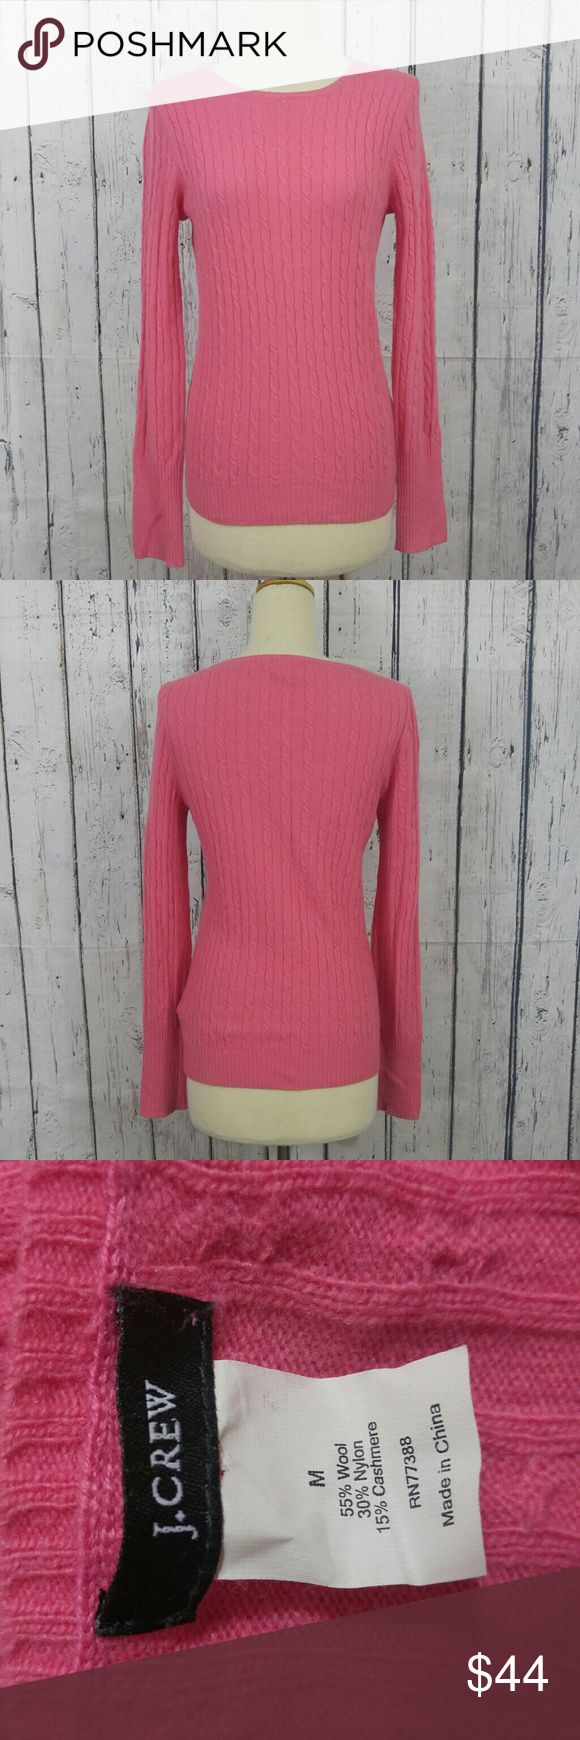 "J. Crew Cambridge Cable Crewneck Sweater J. Crew Cambridge Cable Crewneck Sweater  in a salmon pink. Size Medium, great pre worn condition no flaws. Fabric is cashmere blend  Measurements are below, taken straight across with the garment laying flat  Bust - 16"" Length - 24.5""  00831229499 J. Crew Sweaters Crew & Scoop Necks"